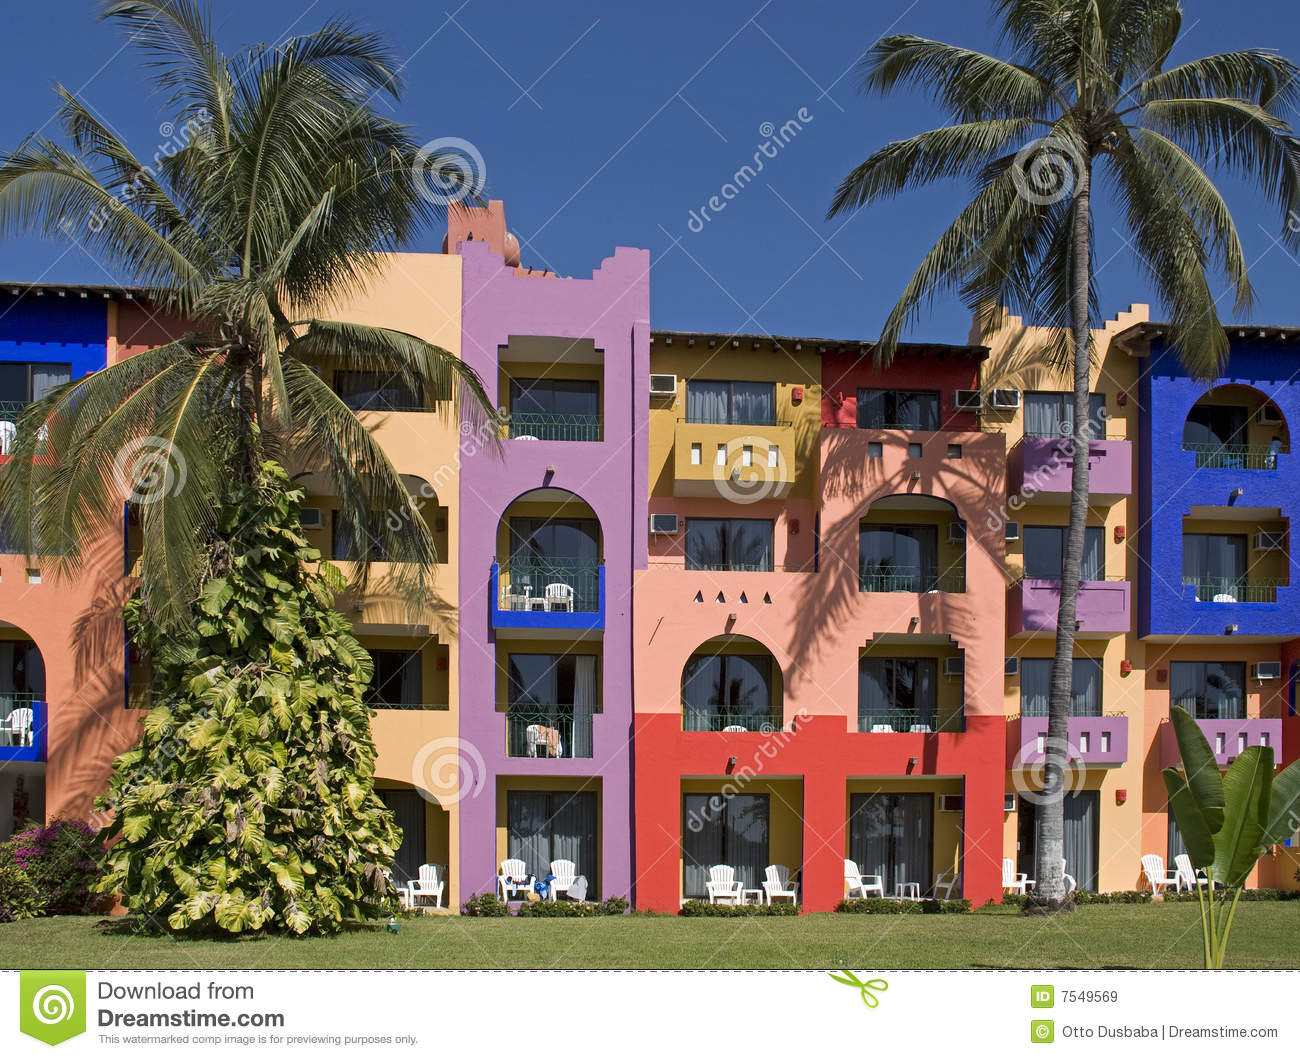 Colorful facade of a tropical resort building